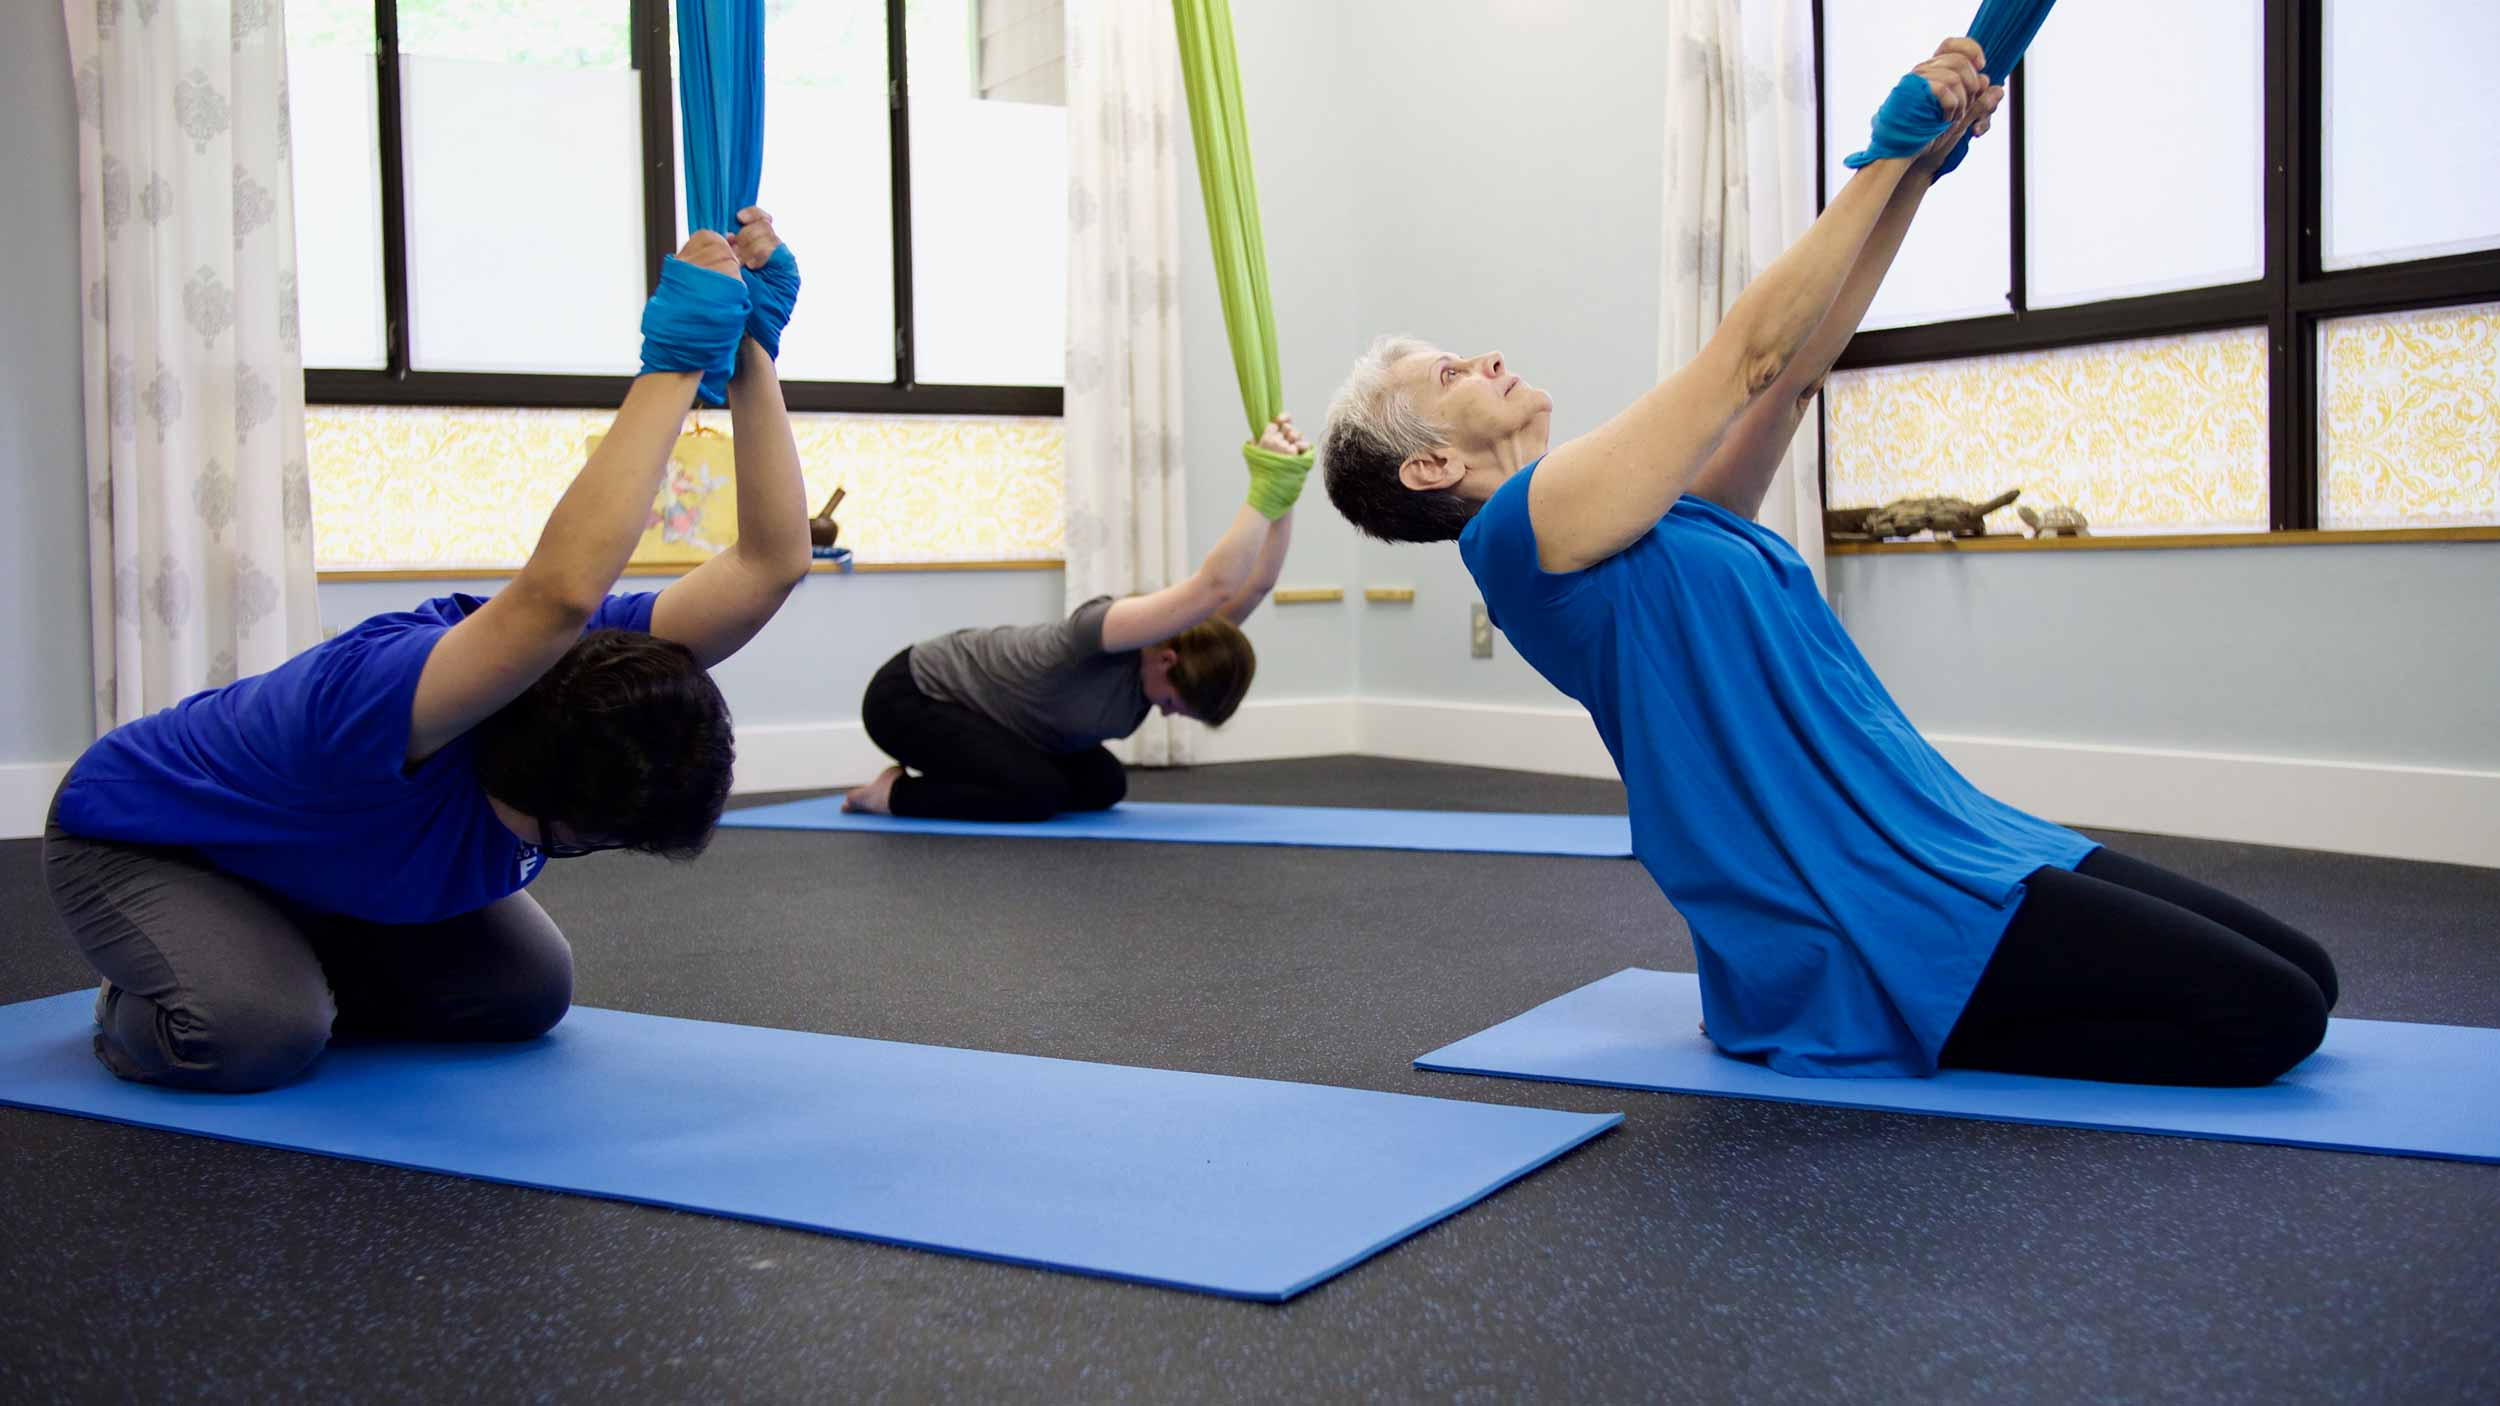 Copy of Balance, mobility, and pain relief—at any age